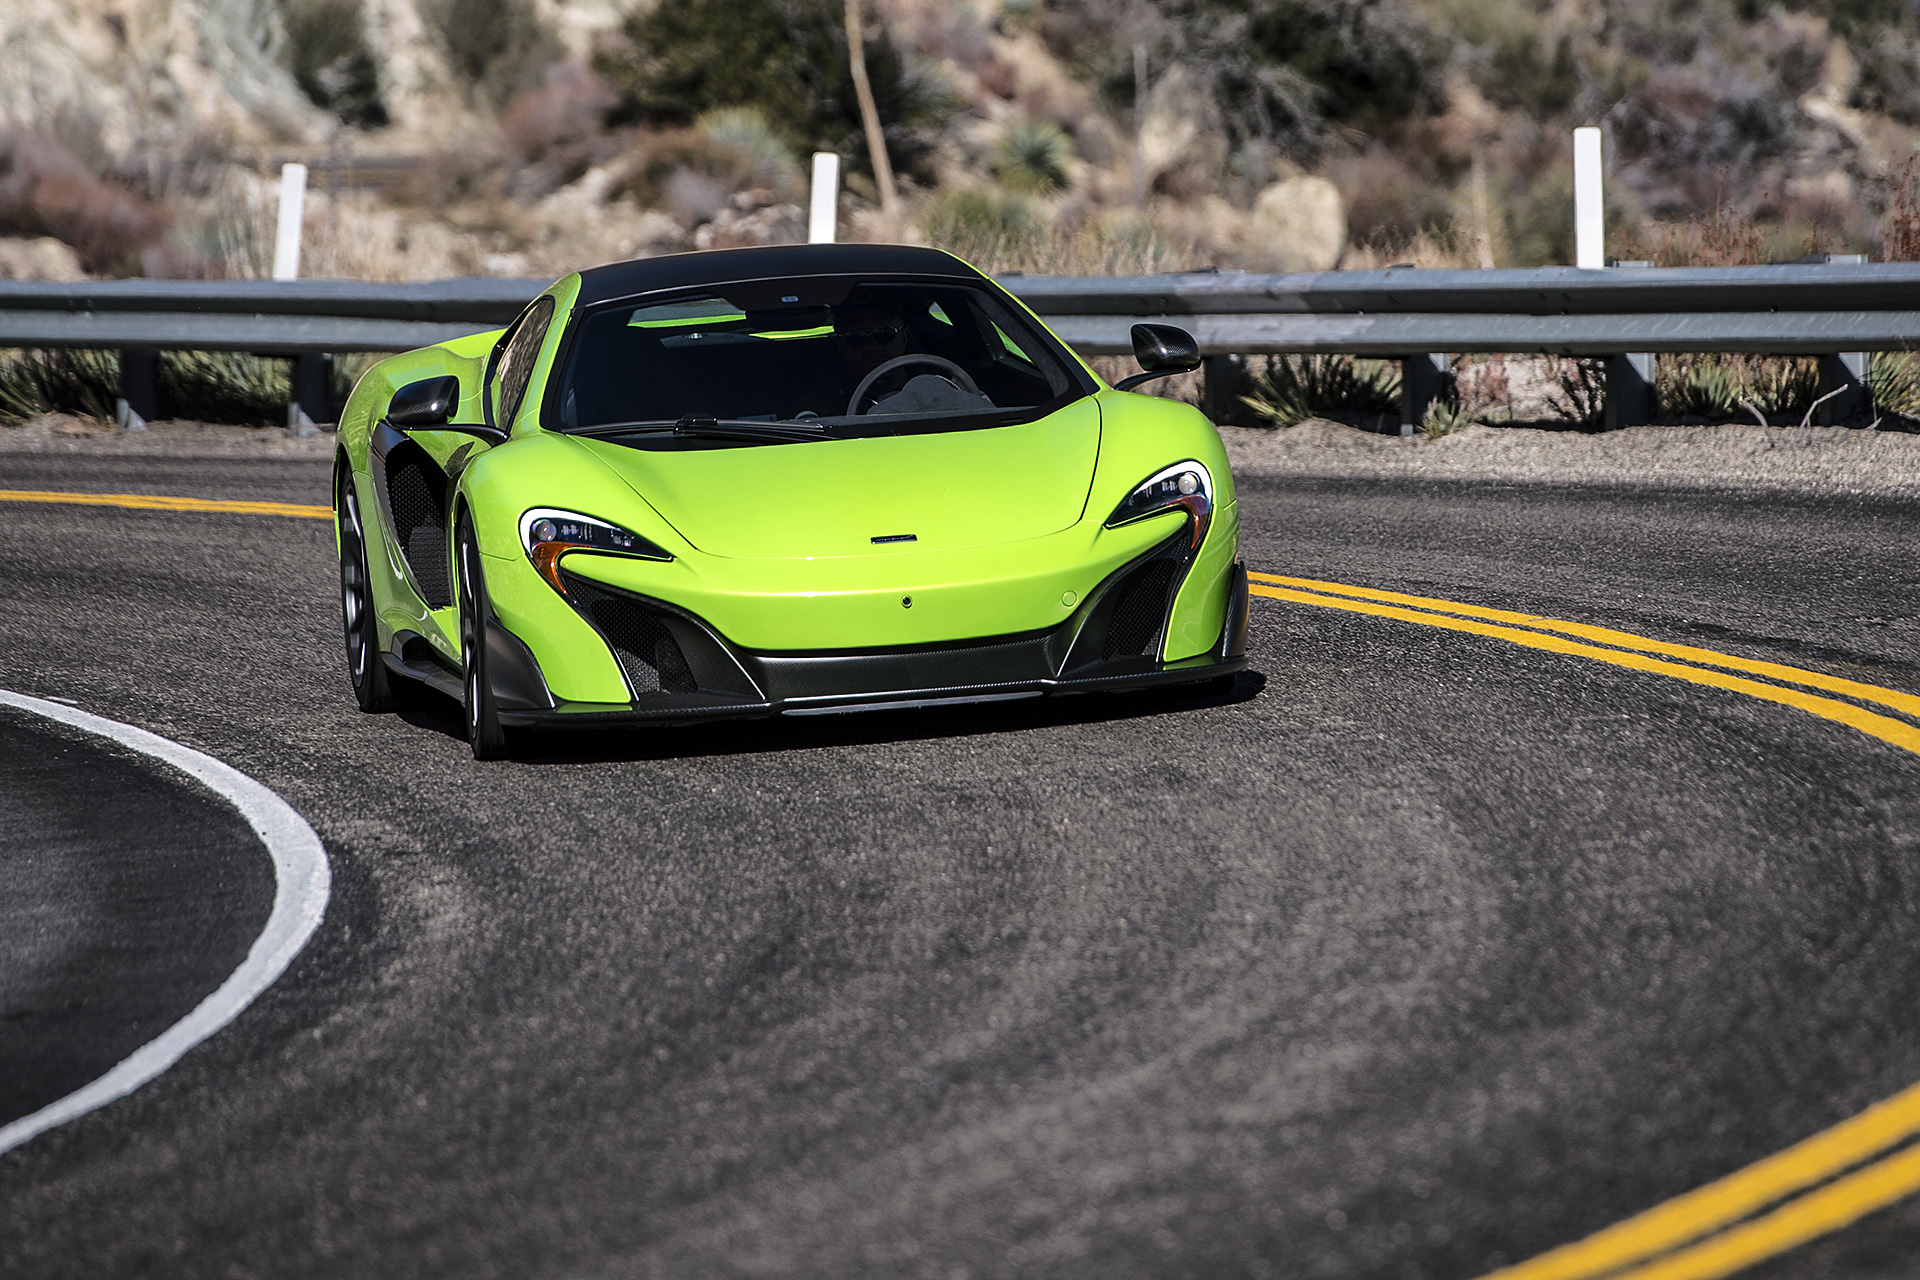 24-2016-mclaren-675lt-review-1.jpg